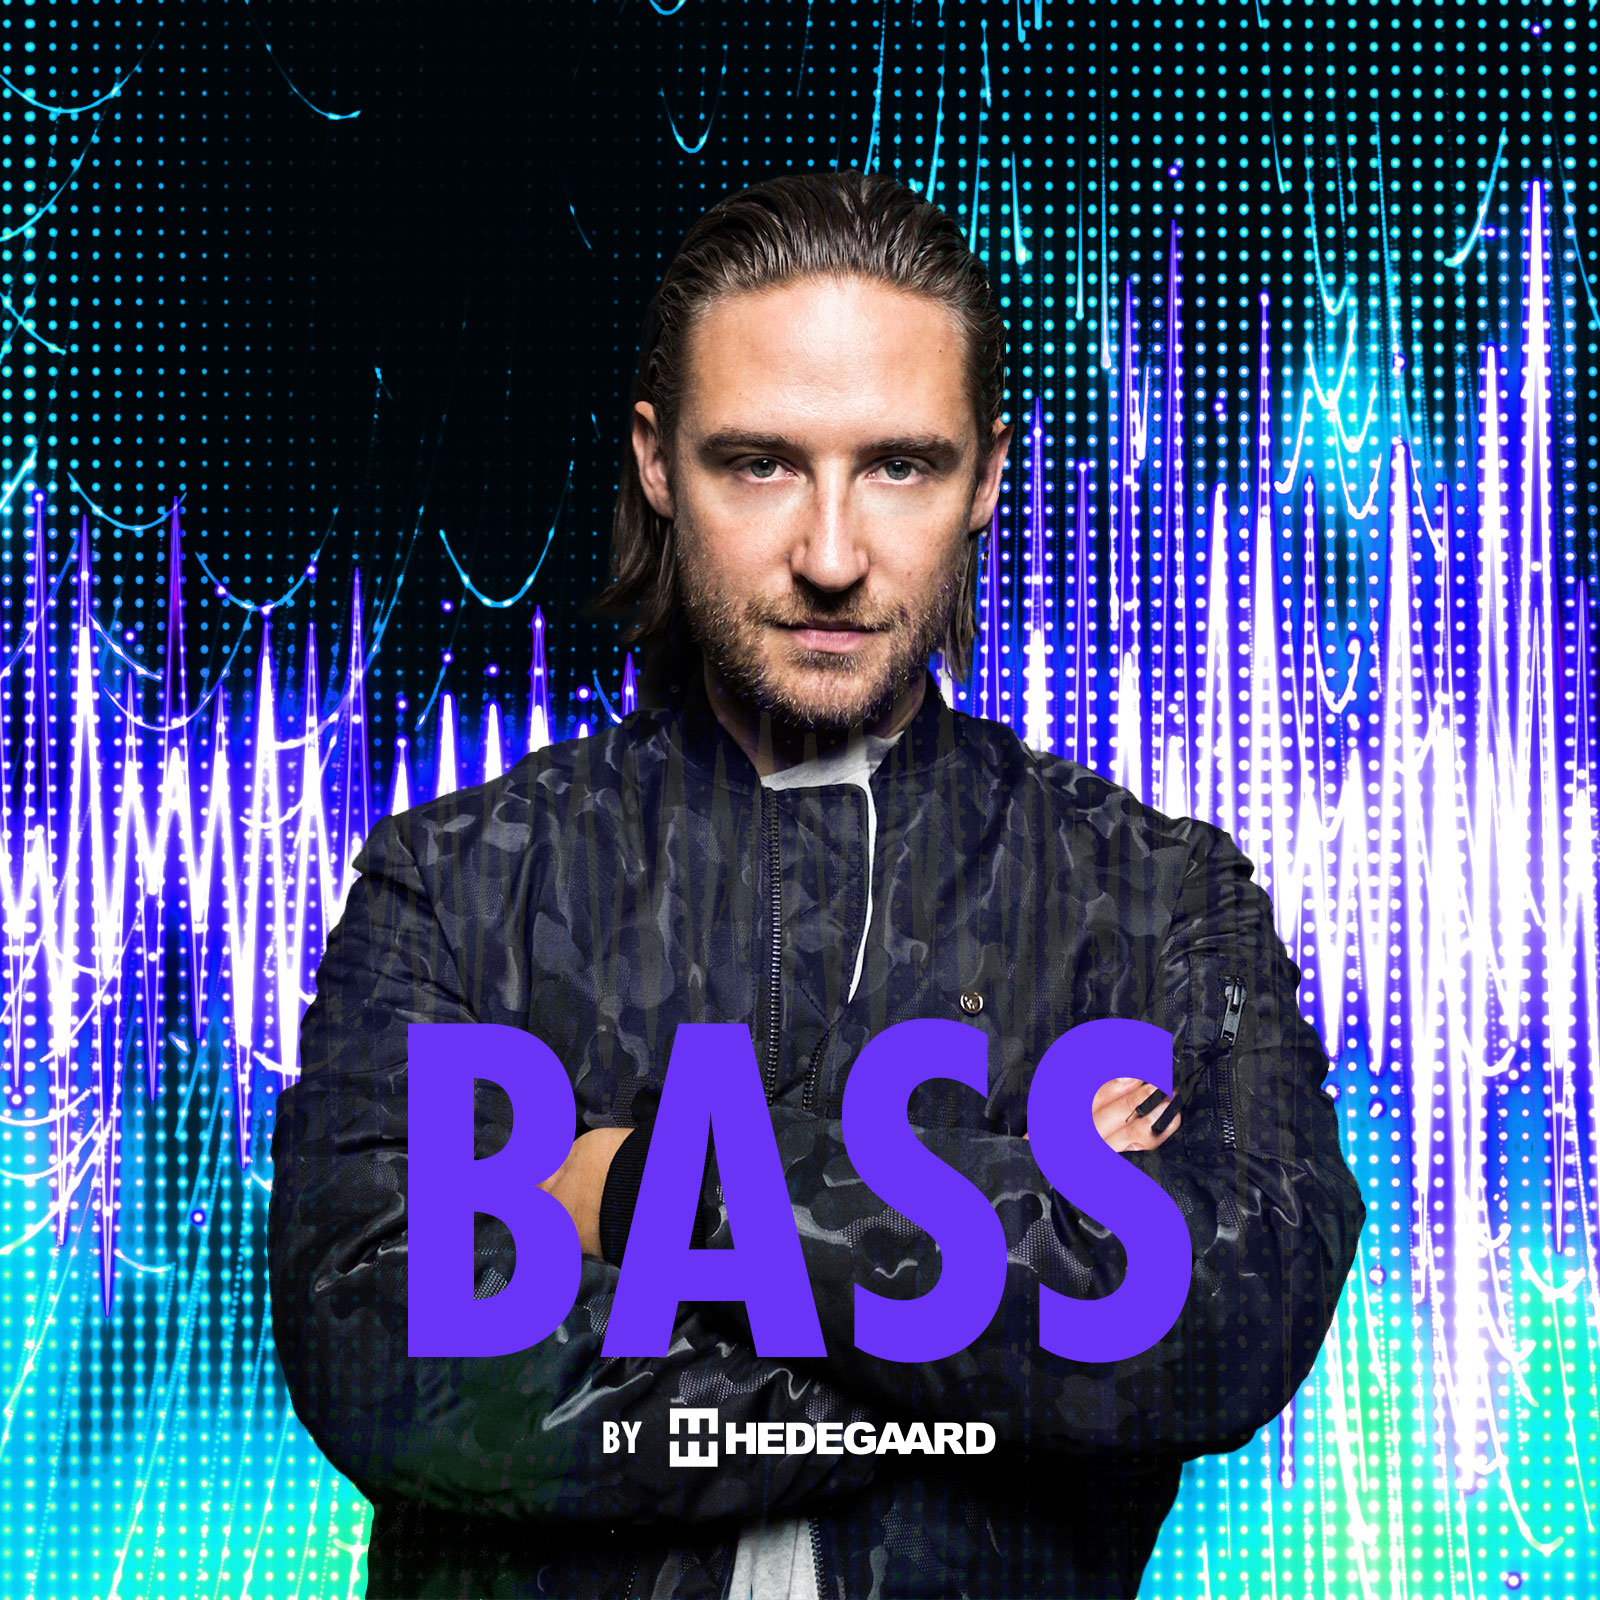 Bass by HEDEGAARD